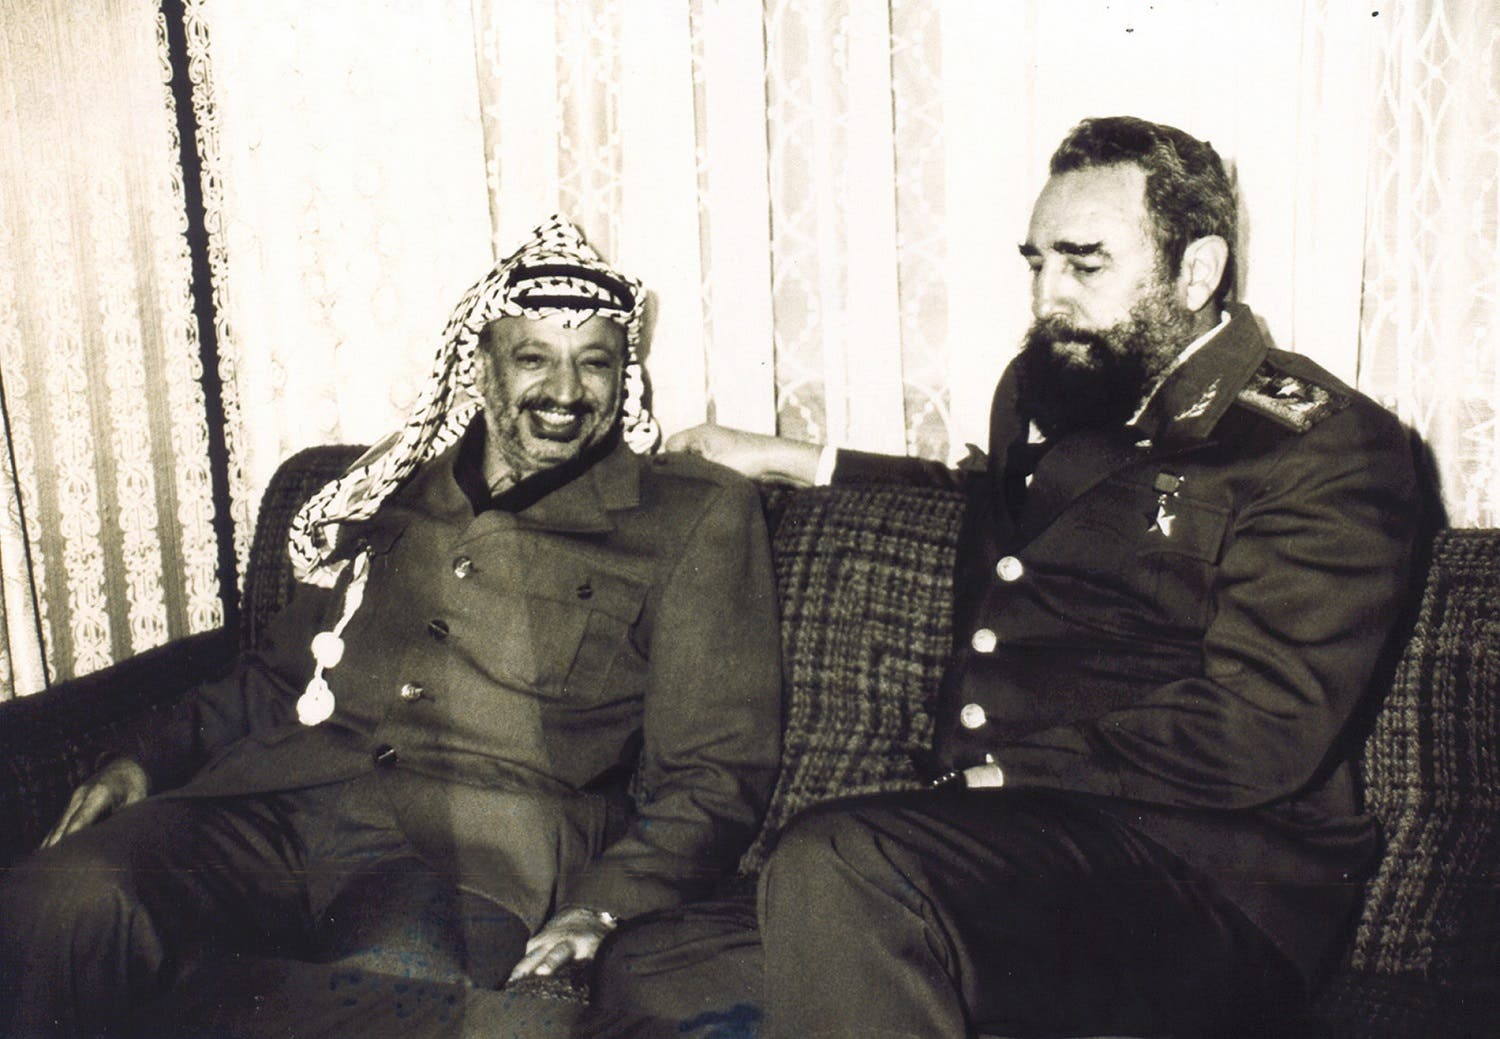 This is an undated file photograph of Palestinian leader Yasser Arafat, left, and Cuban Pesident Fidel Castro, made available by the Palestinian Authority in Gaza City of the Gaza Strip. (AP Photo/Palestinian Authority)